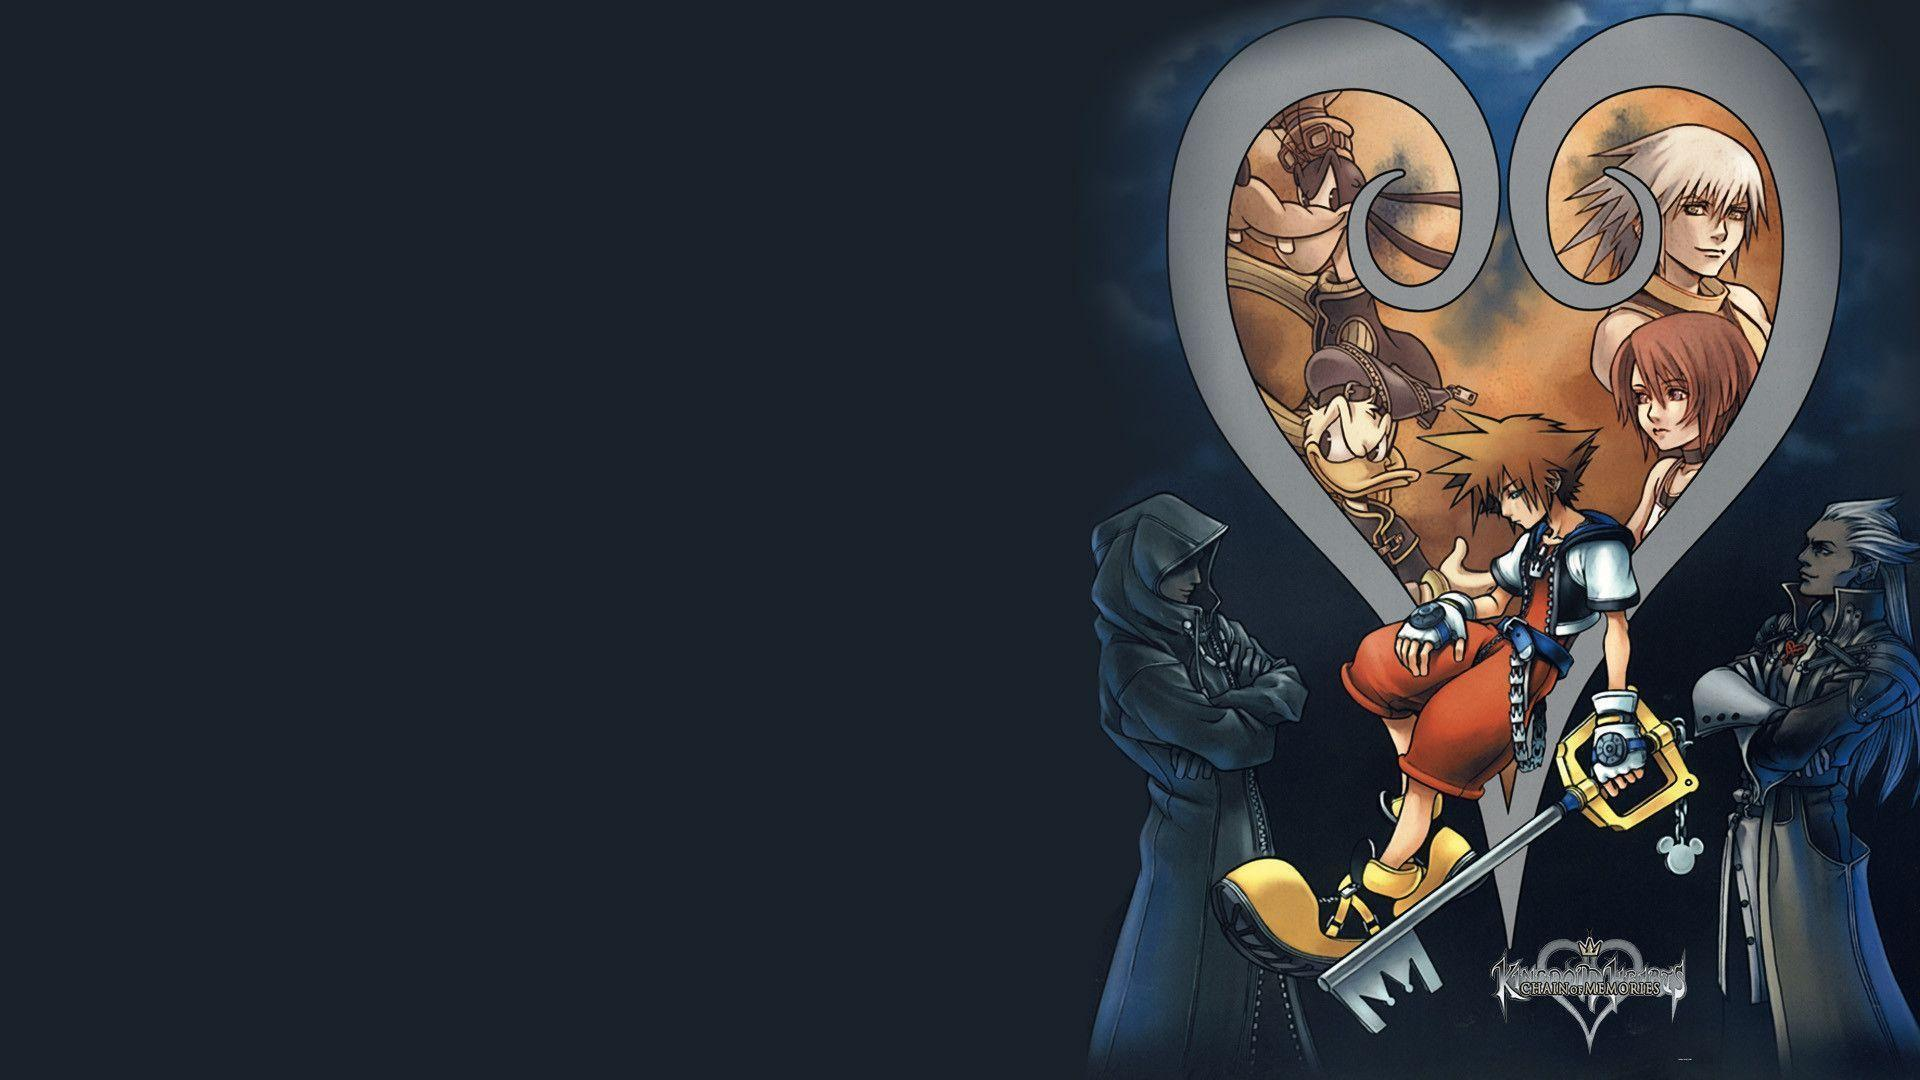 Kingdom Hearts Wallpapers HD 1920x1080